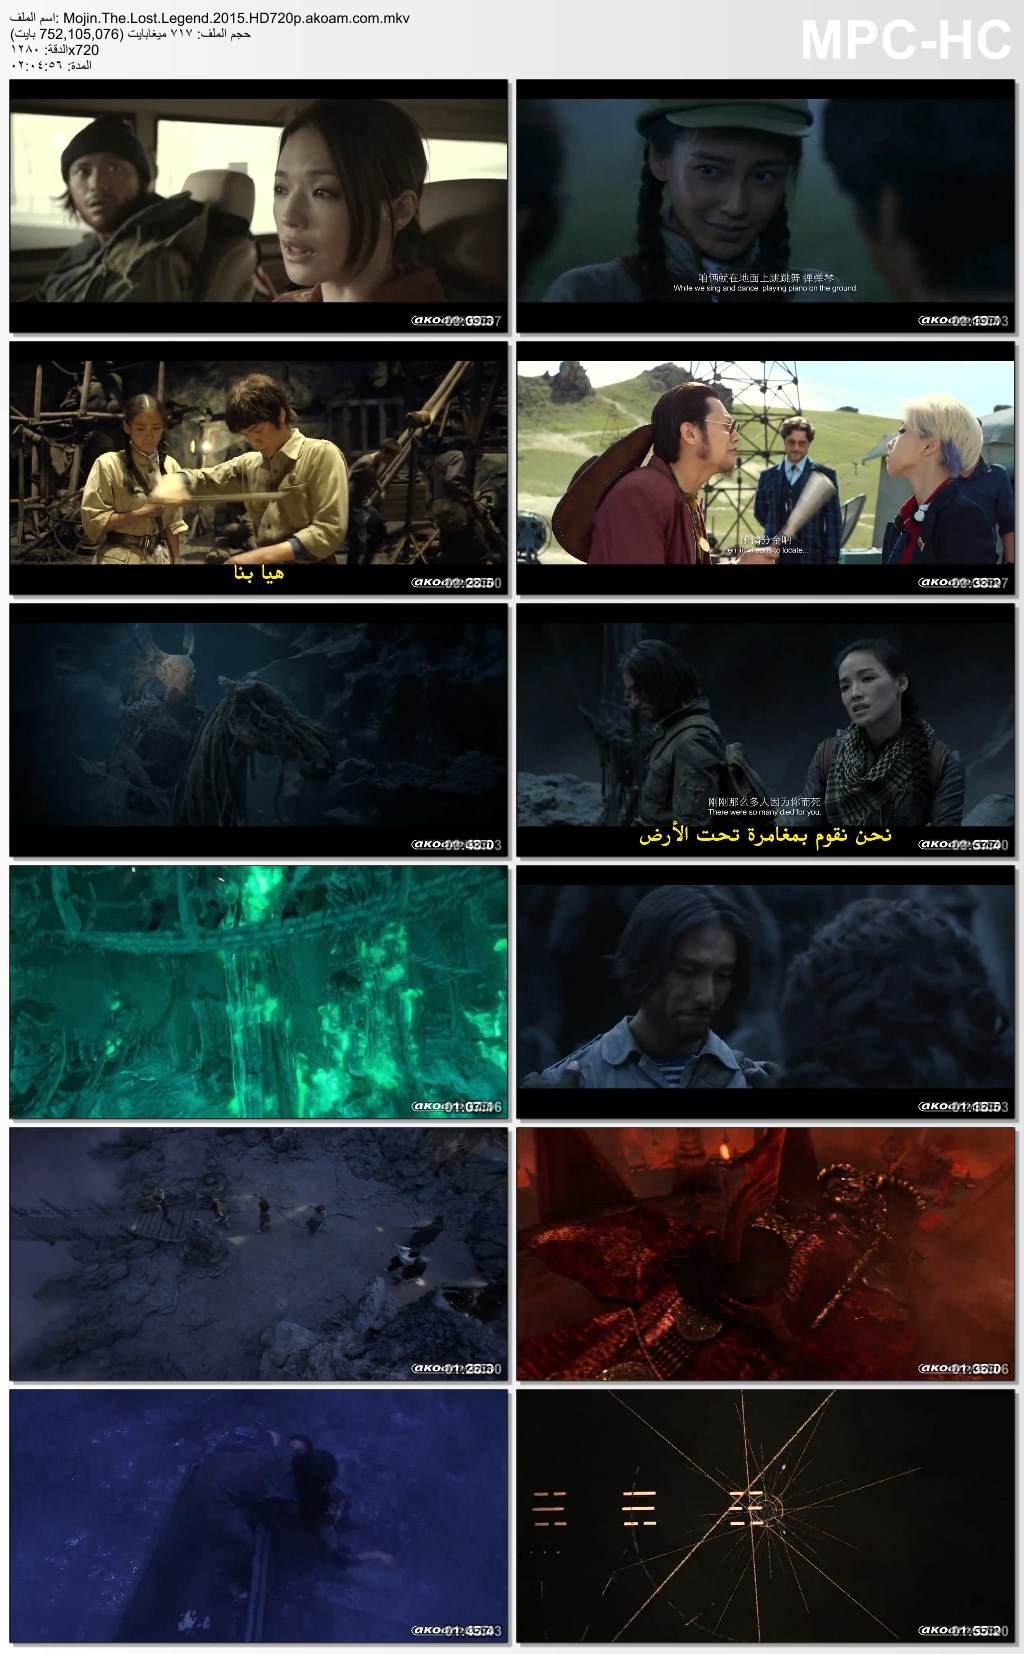 The Ghouls,Mojin - The Lost Legend 2015,Mojin - The Lost Legend,الاكشن,الاسيوي,الرعب